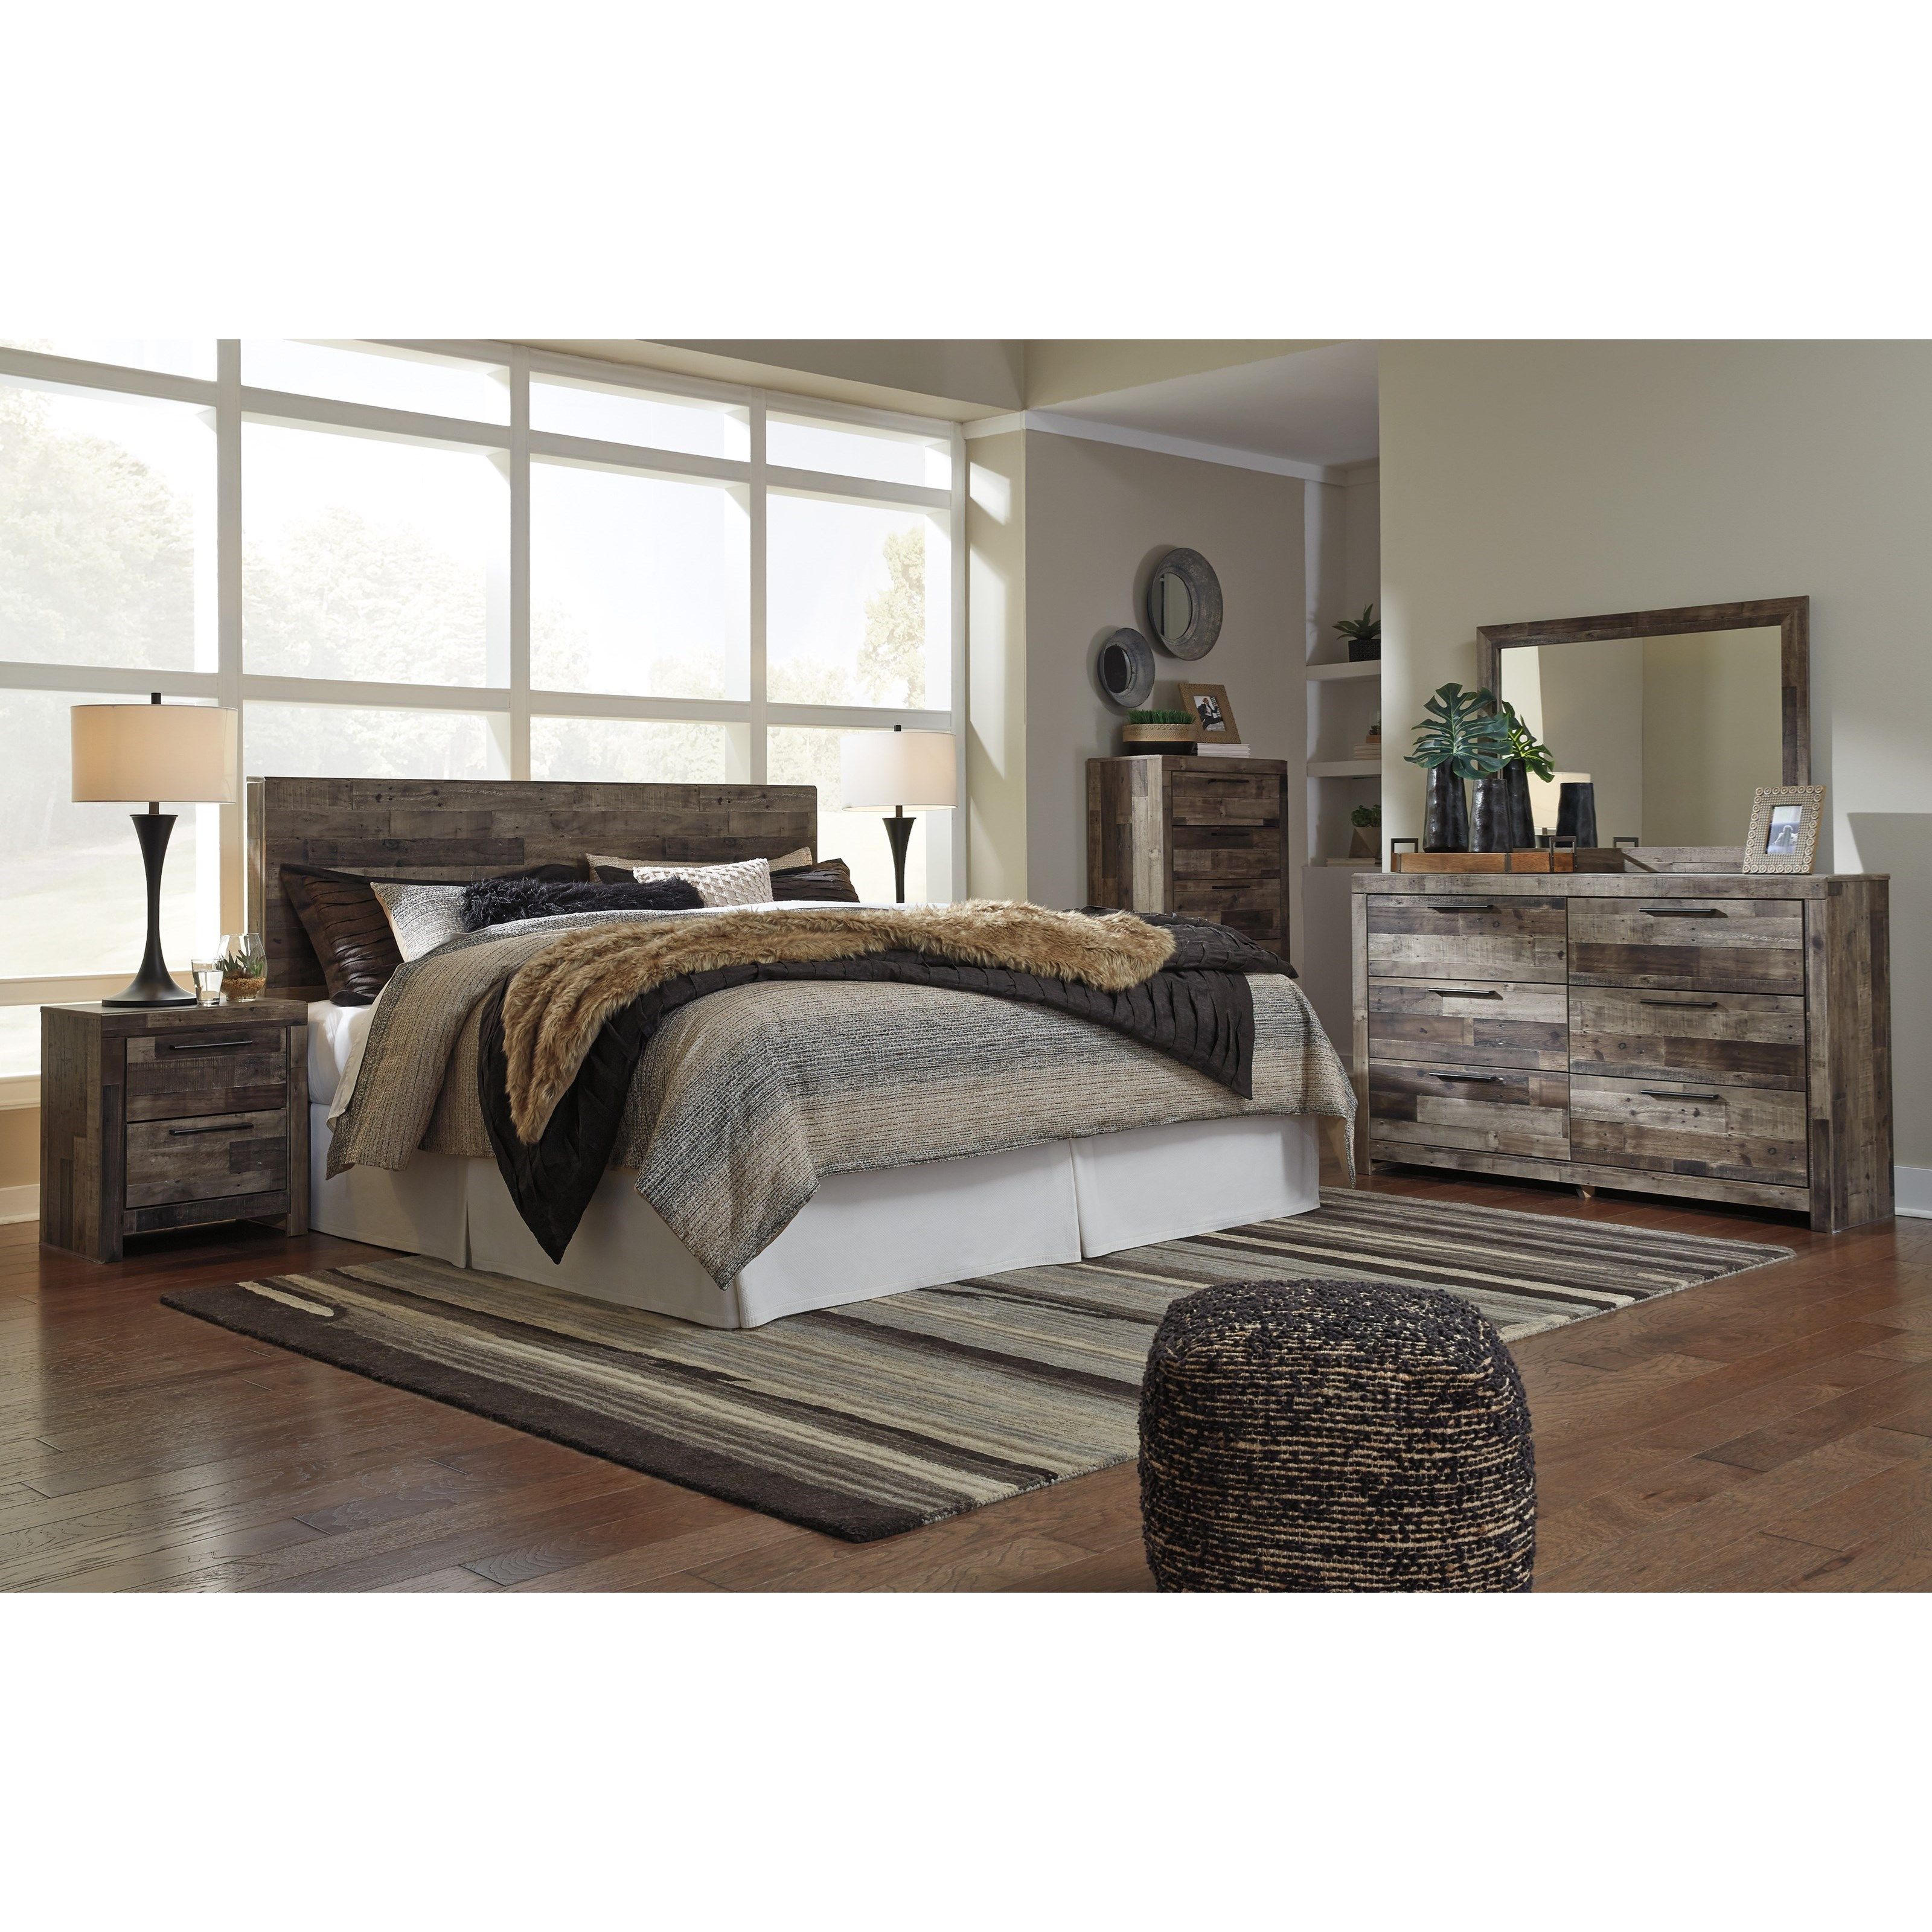 Derekson King Bedroom Group by Benchcraft at Darvin Furniture